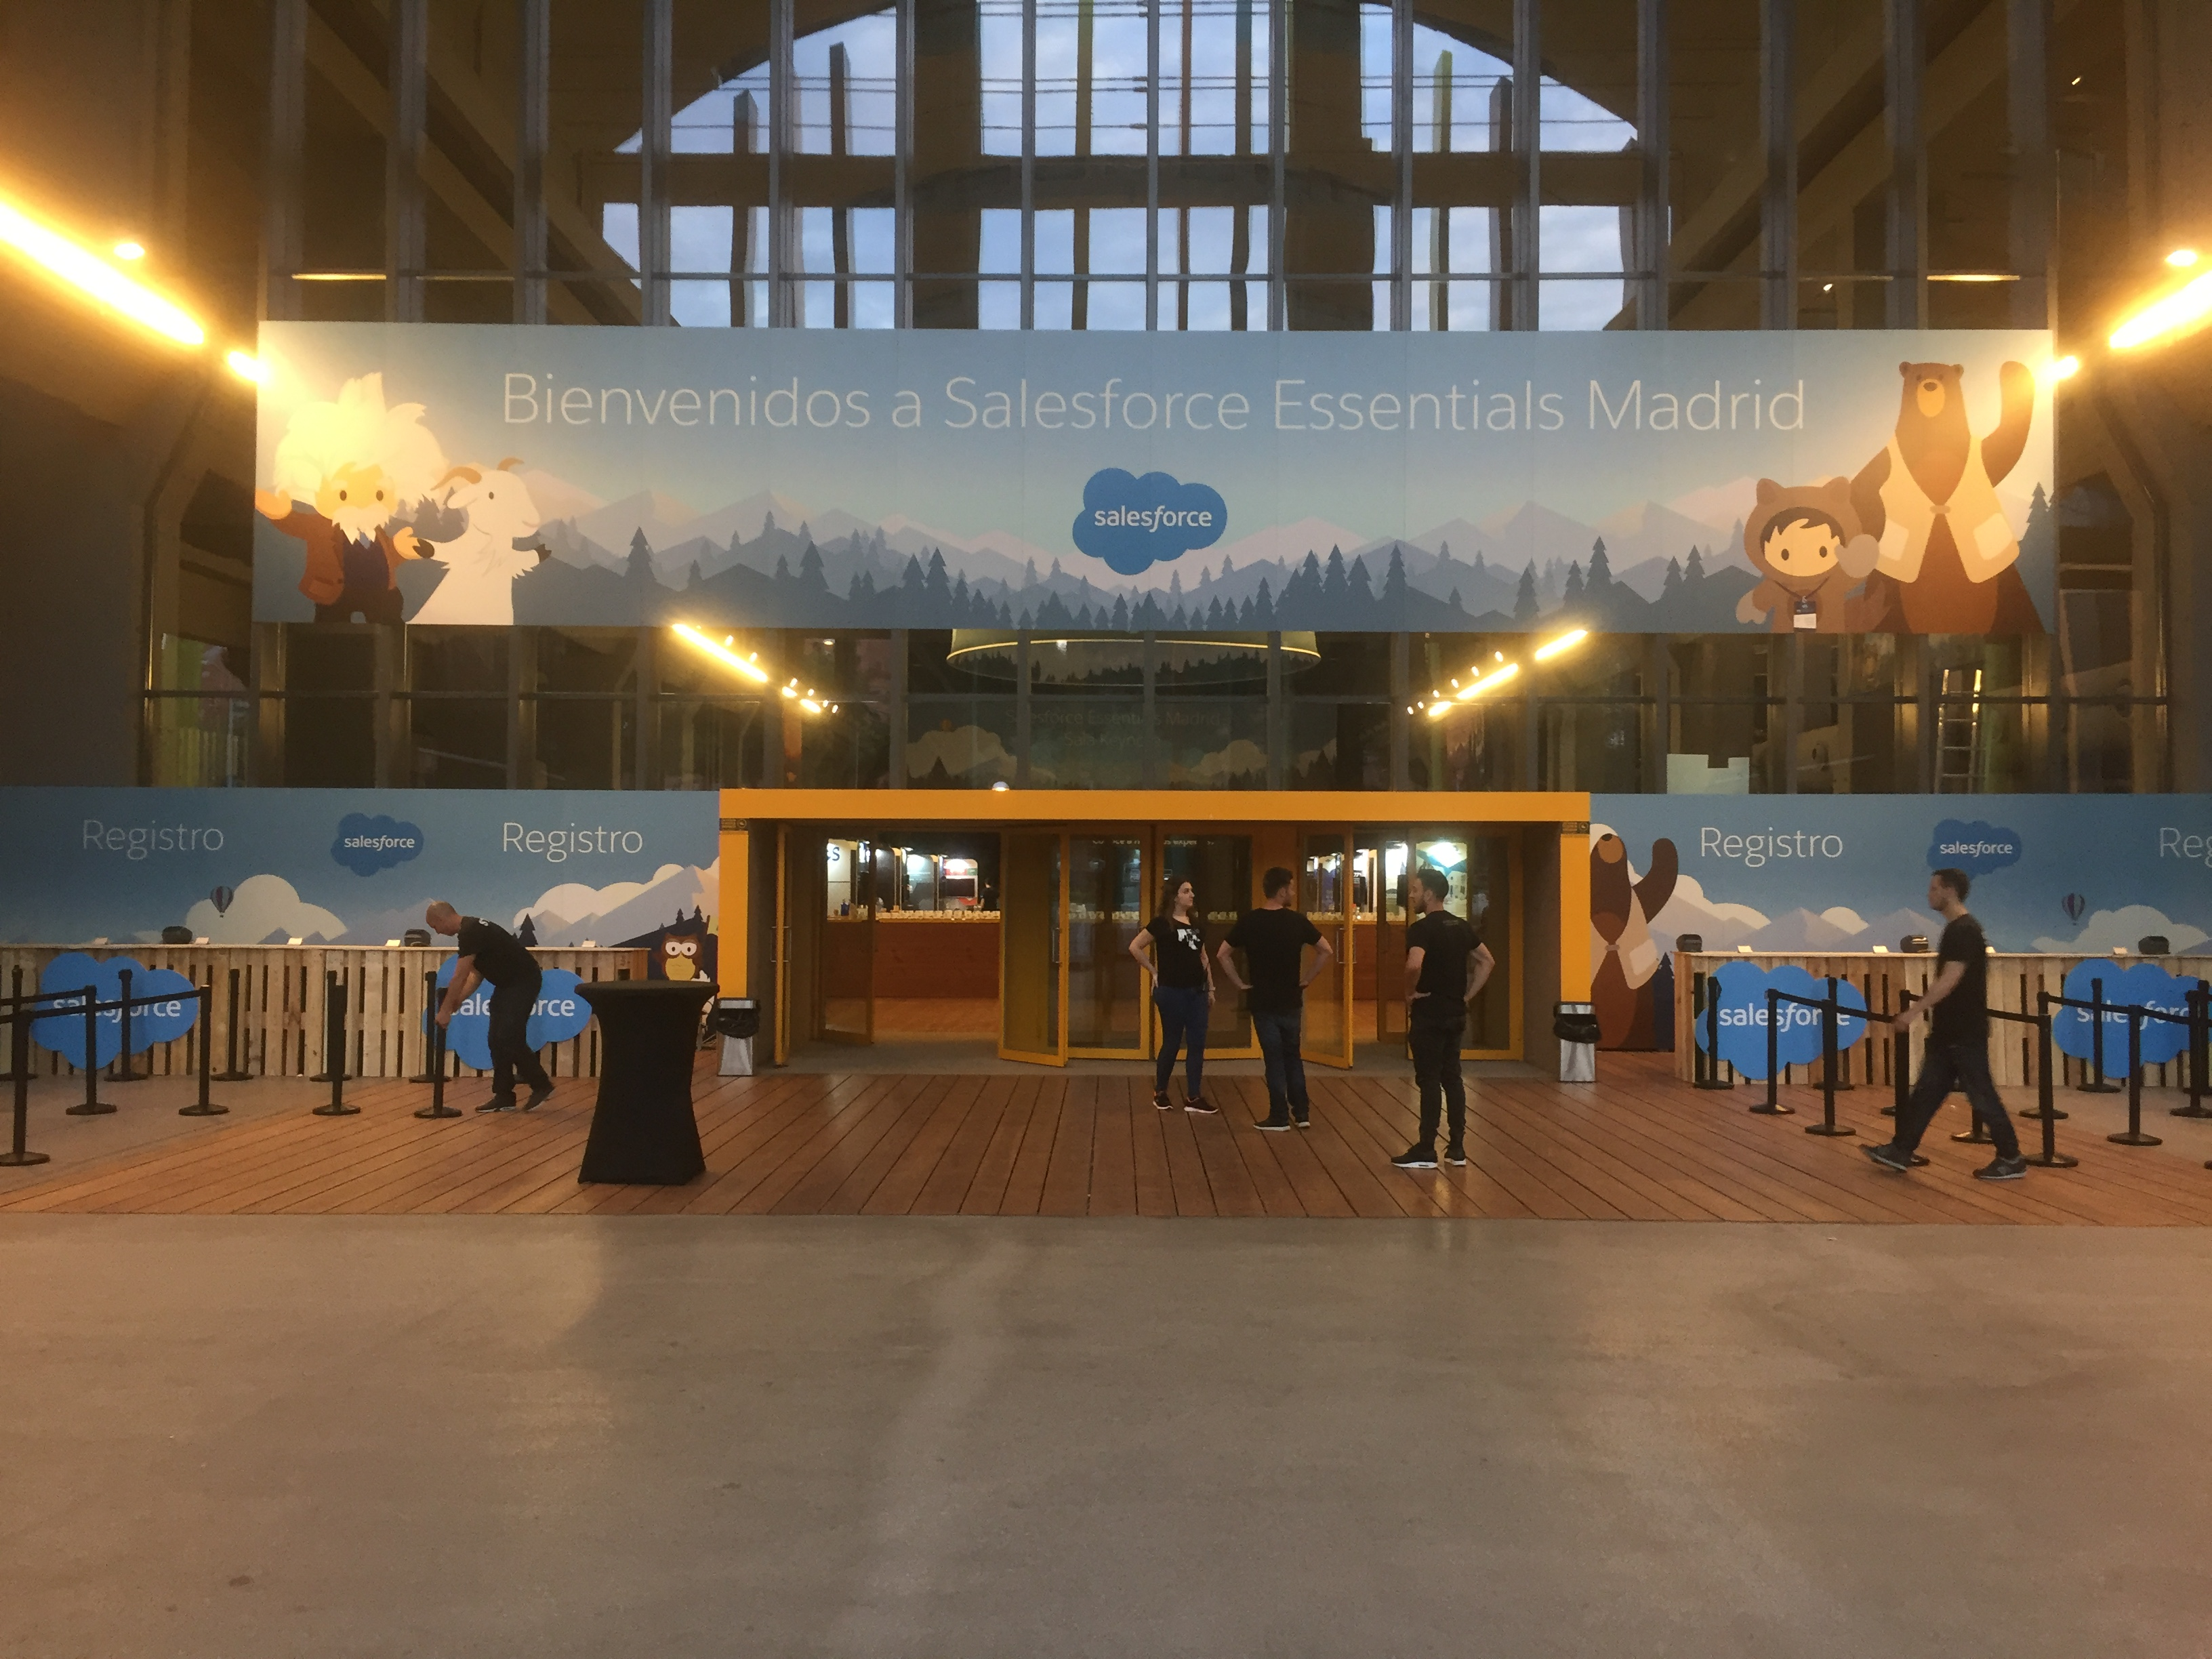 Evento para la empresa Salesforce